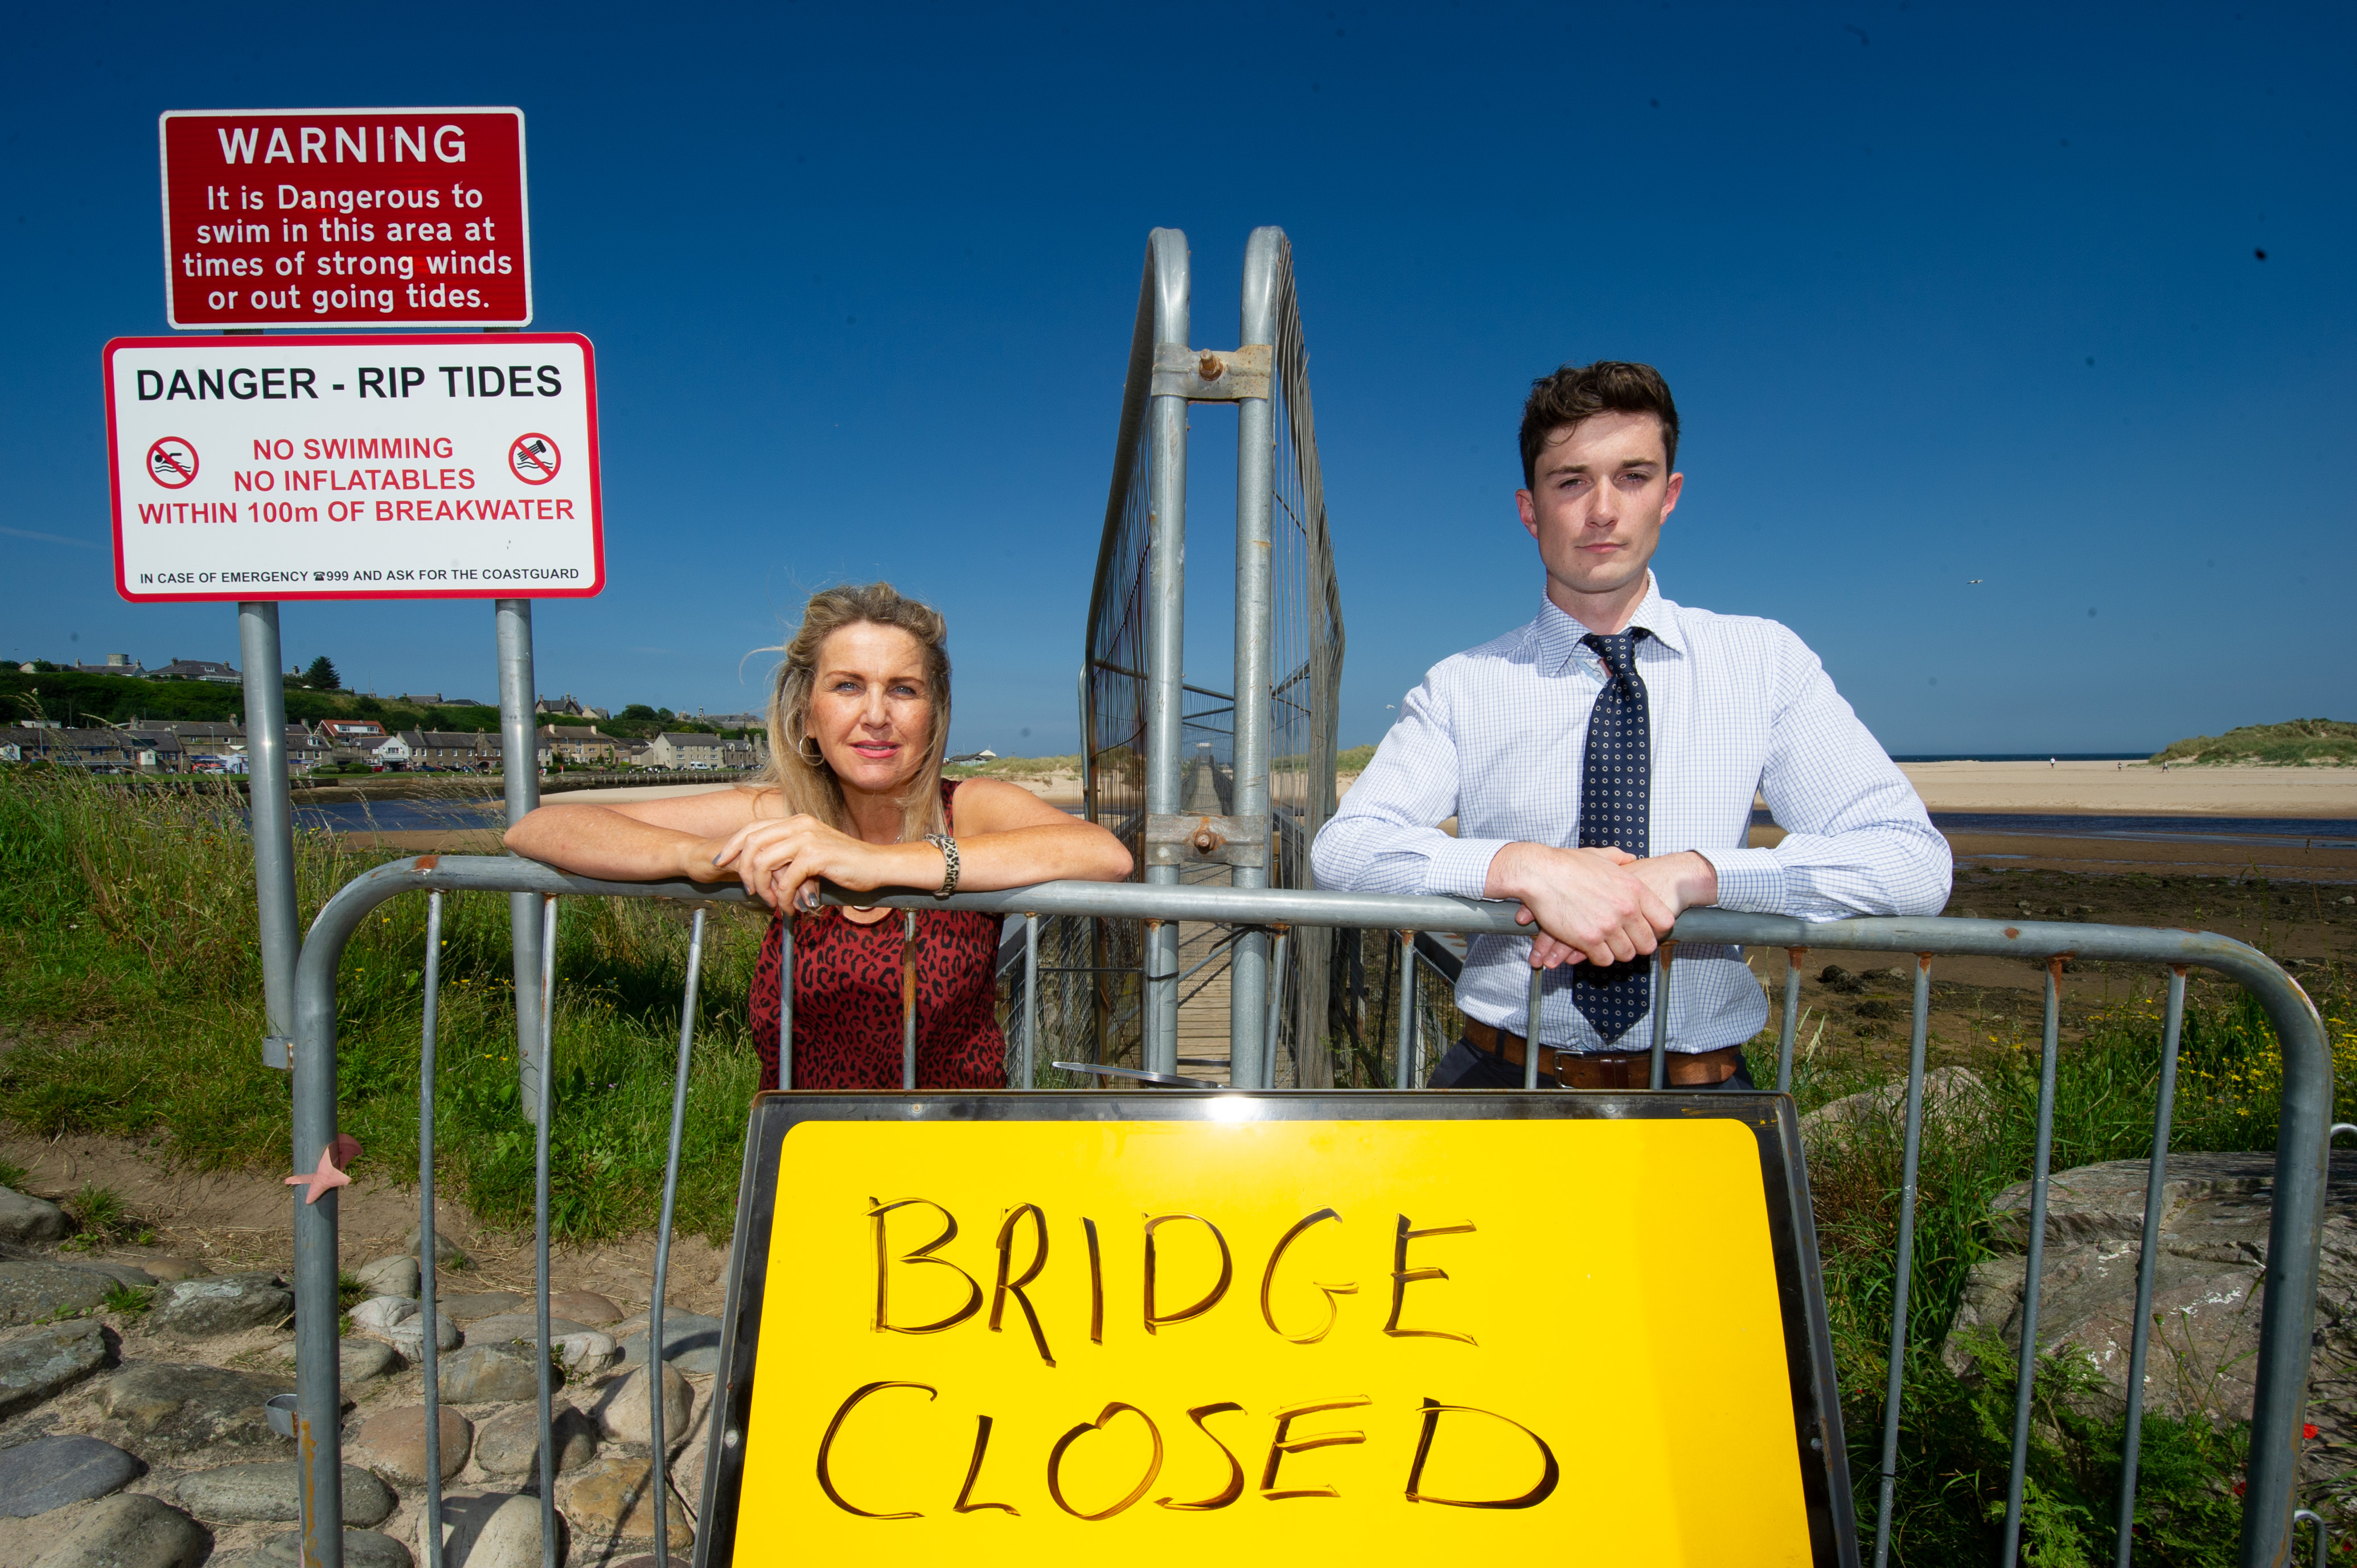 Carolle Relph, vice-chairwoman of Lossiemouth Community Council, and Huw Williams, development officer for Lossiemouth Community Development Trust, at the East Beach bridge in Lossiemouth.